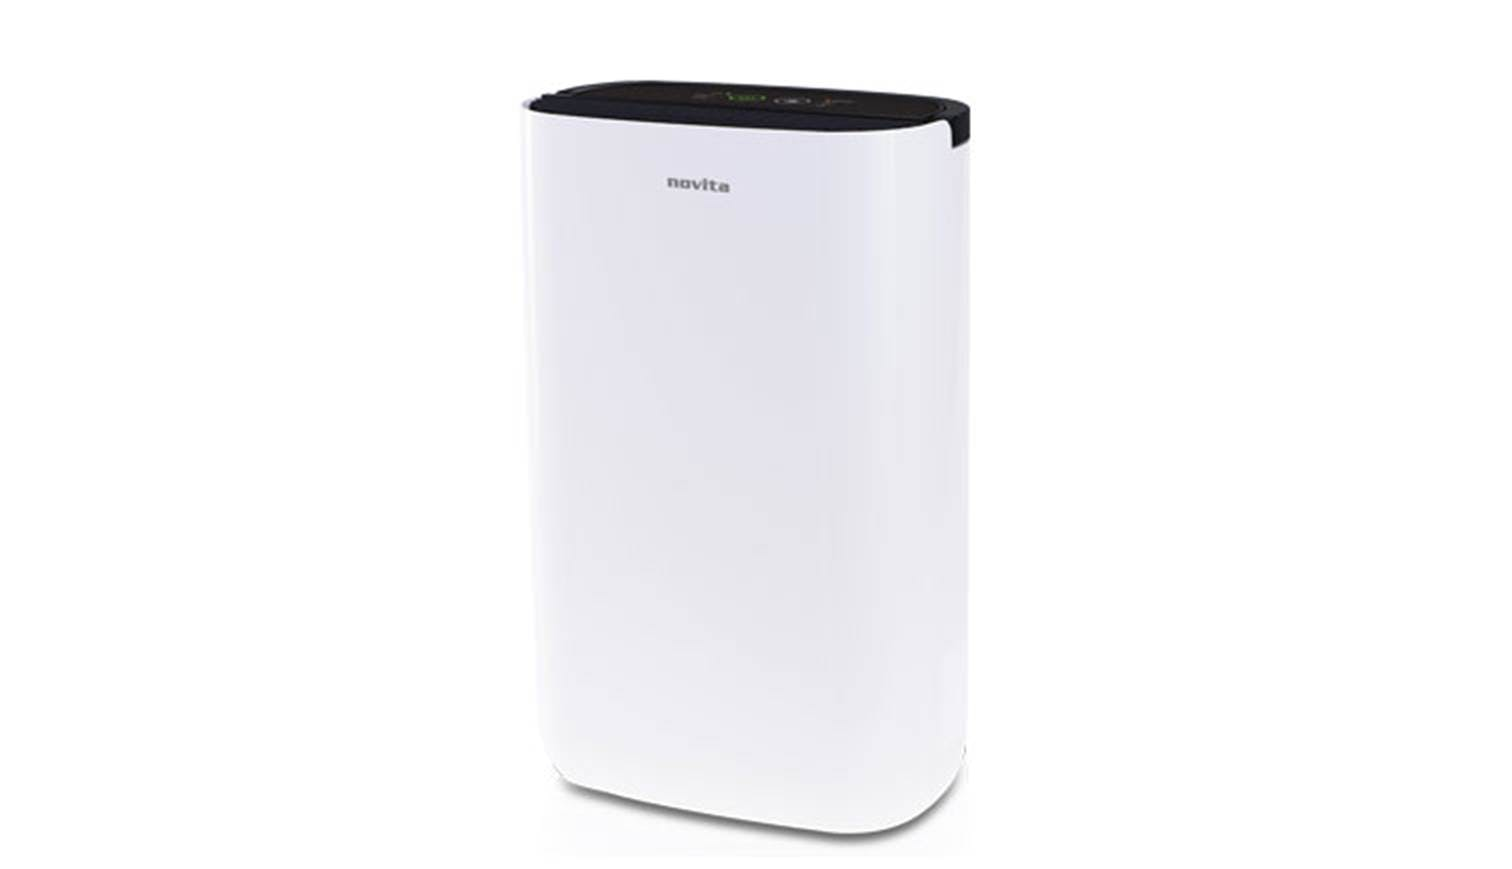 Small Dehumidifier For Bedroom Dehumidifier Humidifier Dehumidifier Singapore Air Humidifier